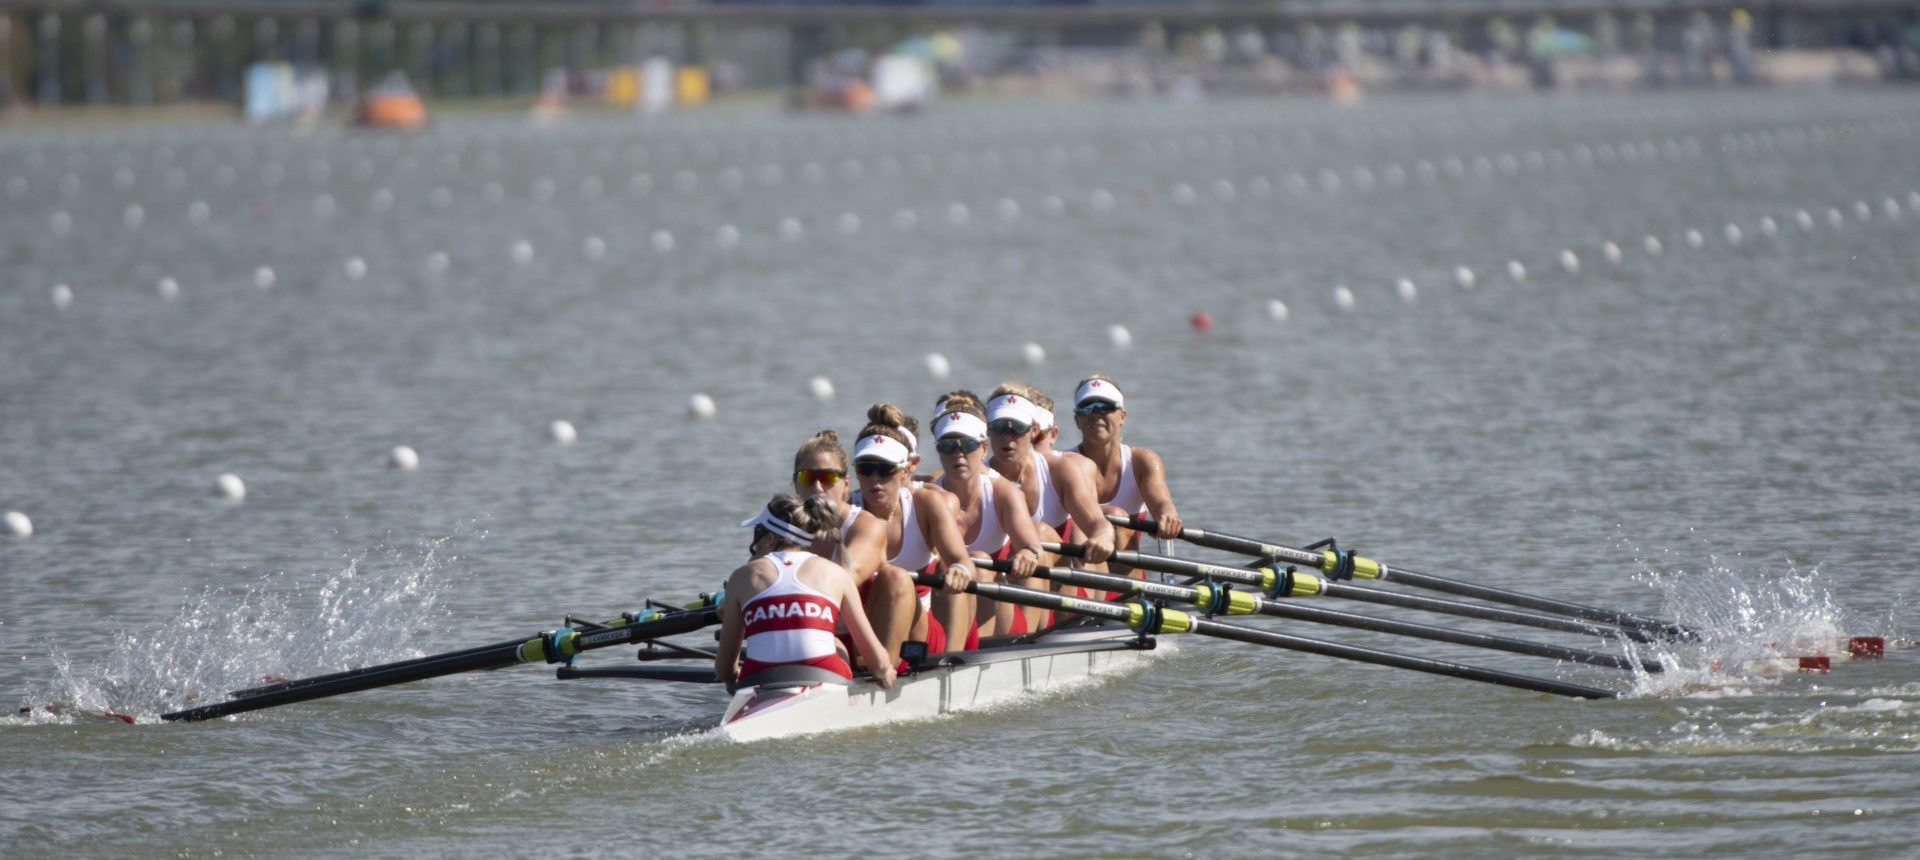 Canadian Crews named for 2019 World Rowing Cup and Gavirate International Para Rowing Regatta